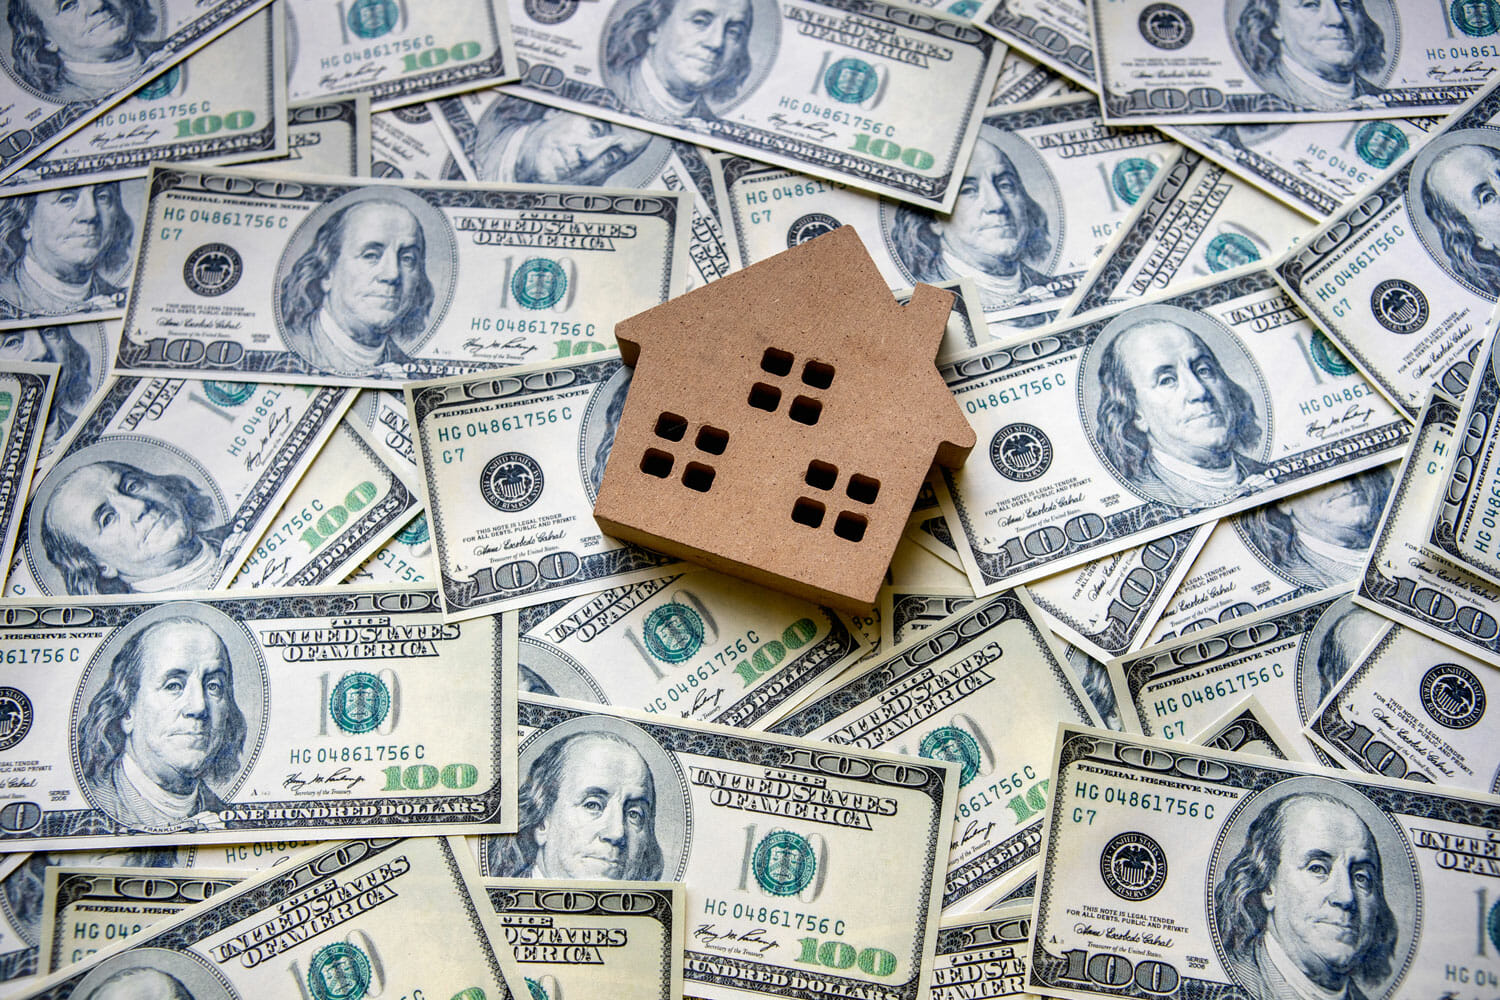 Virginia divorce - do we have to refinance our house?